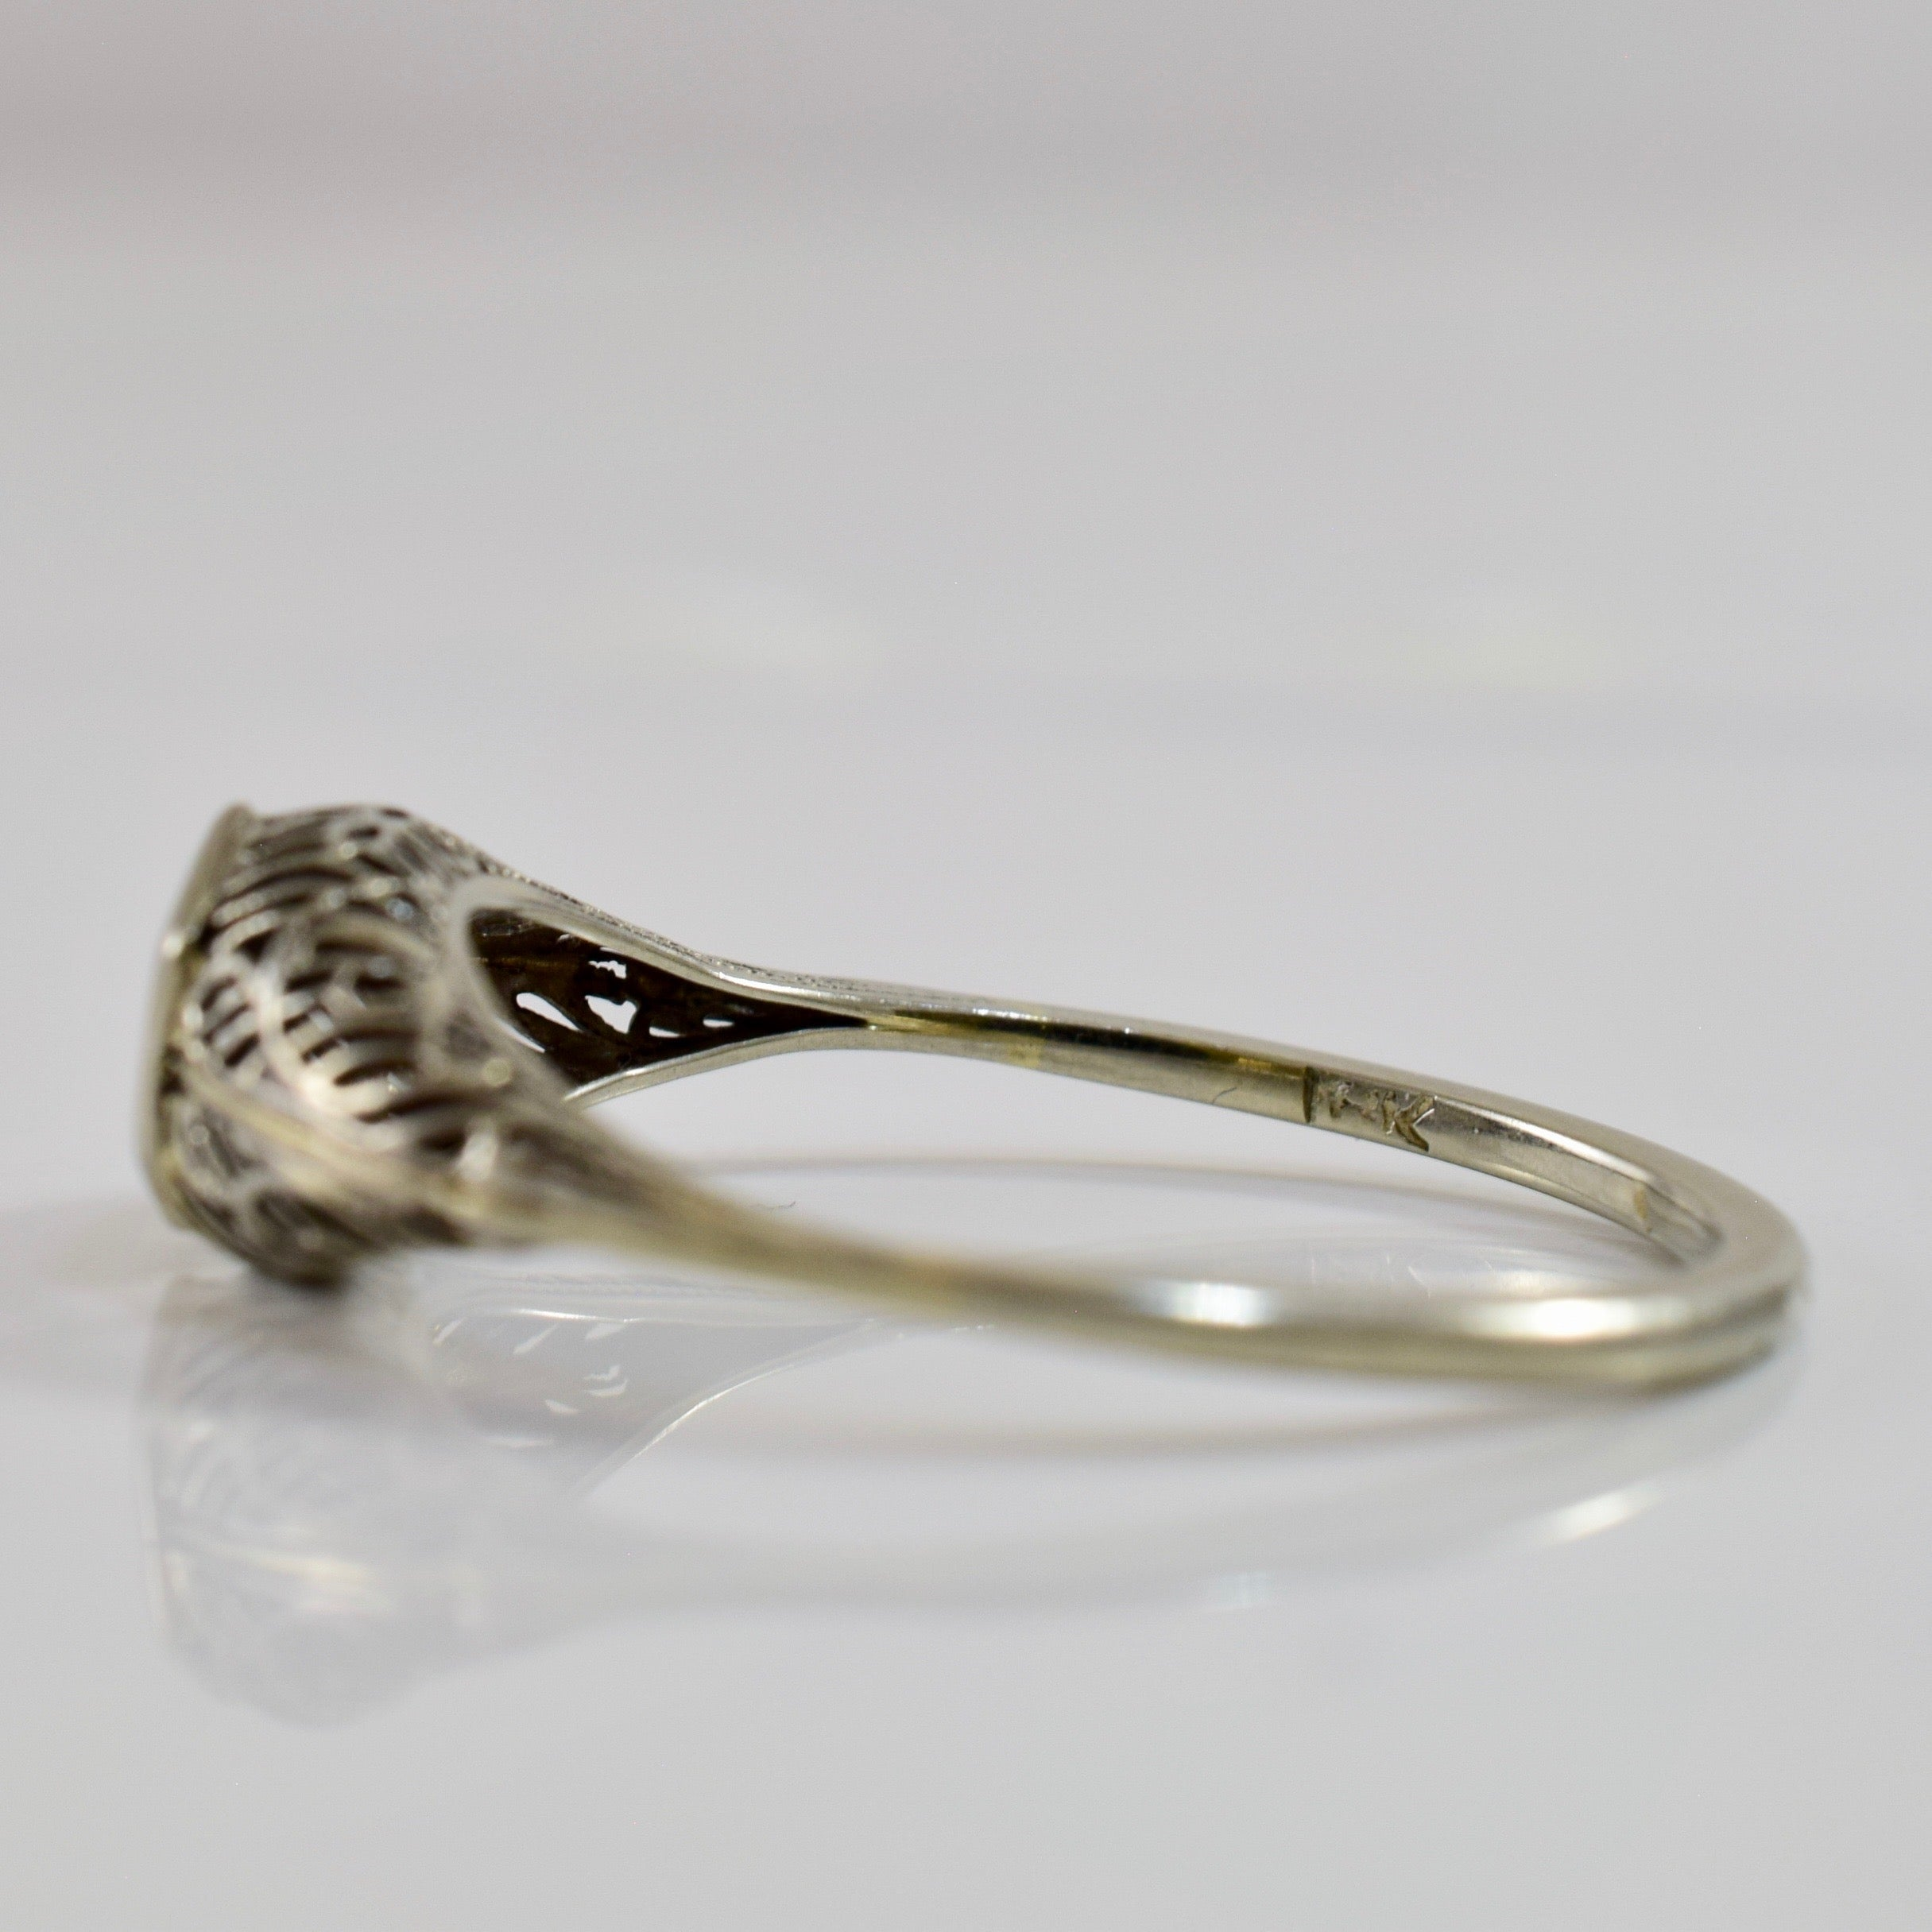 Art Deco Filigree Diamond Ring | 0.04 ctw SZ 9 |